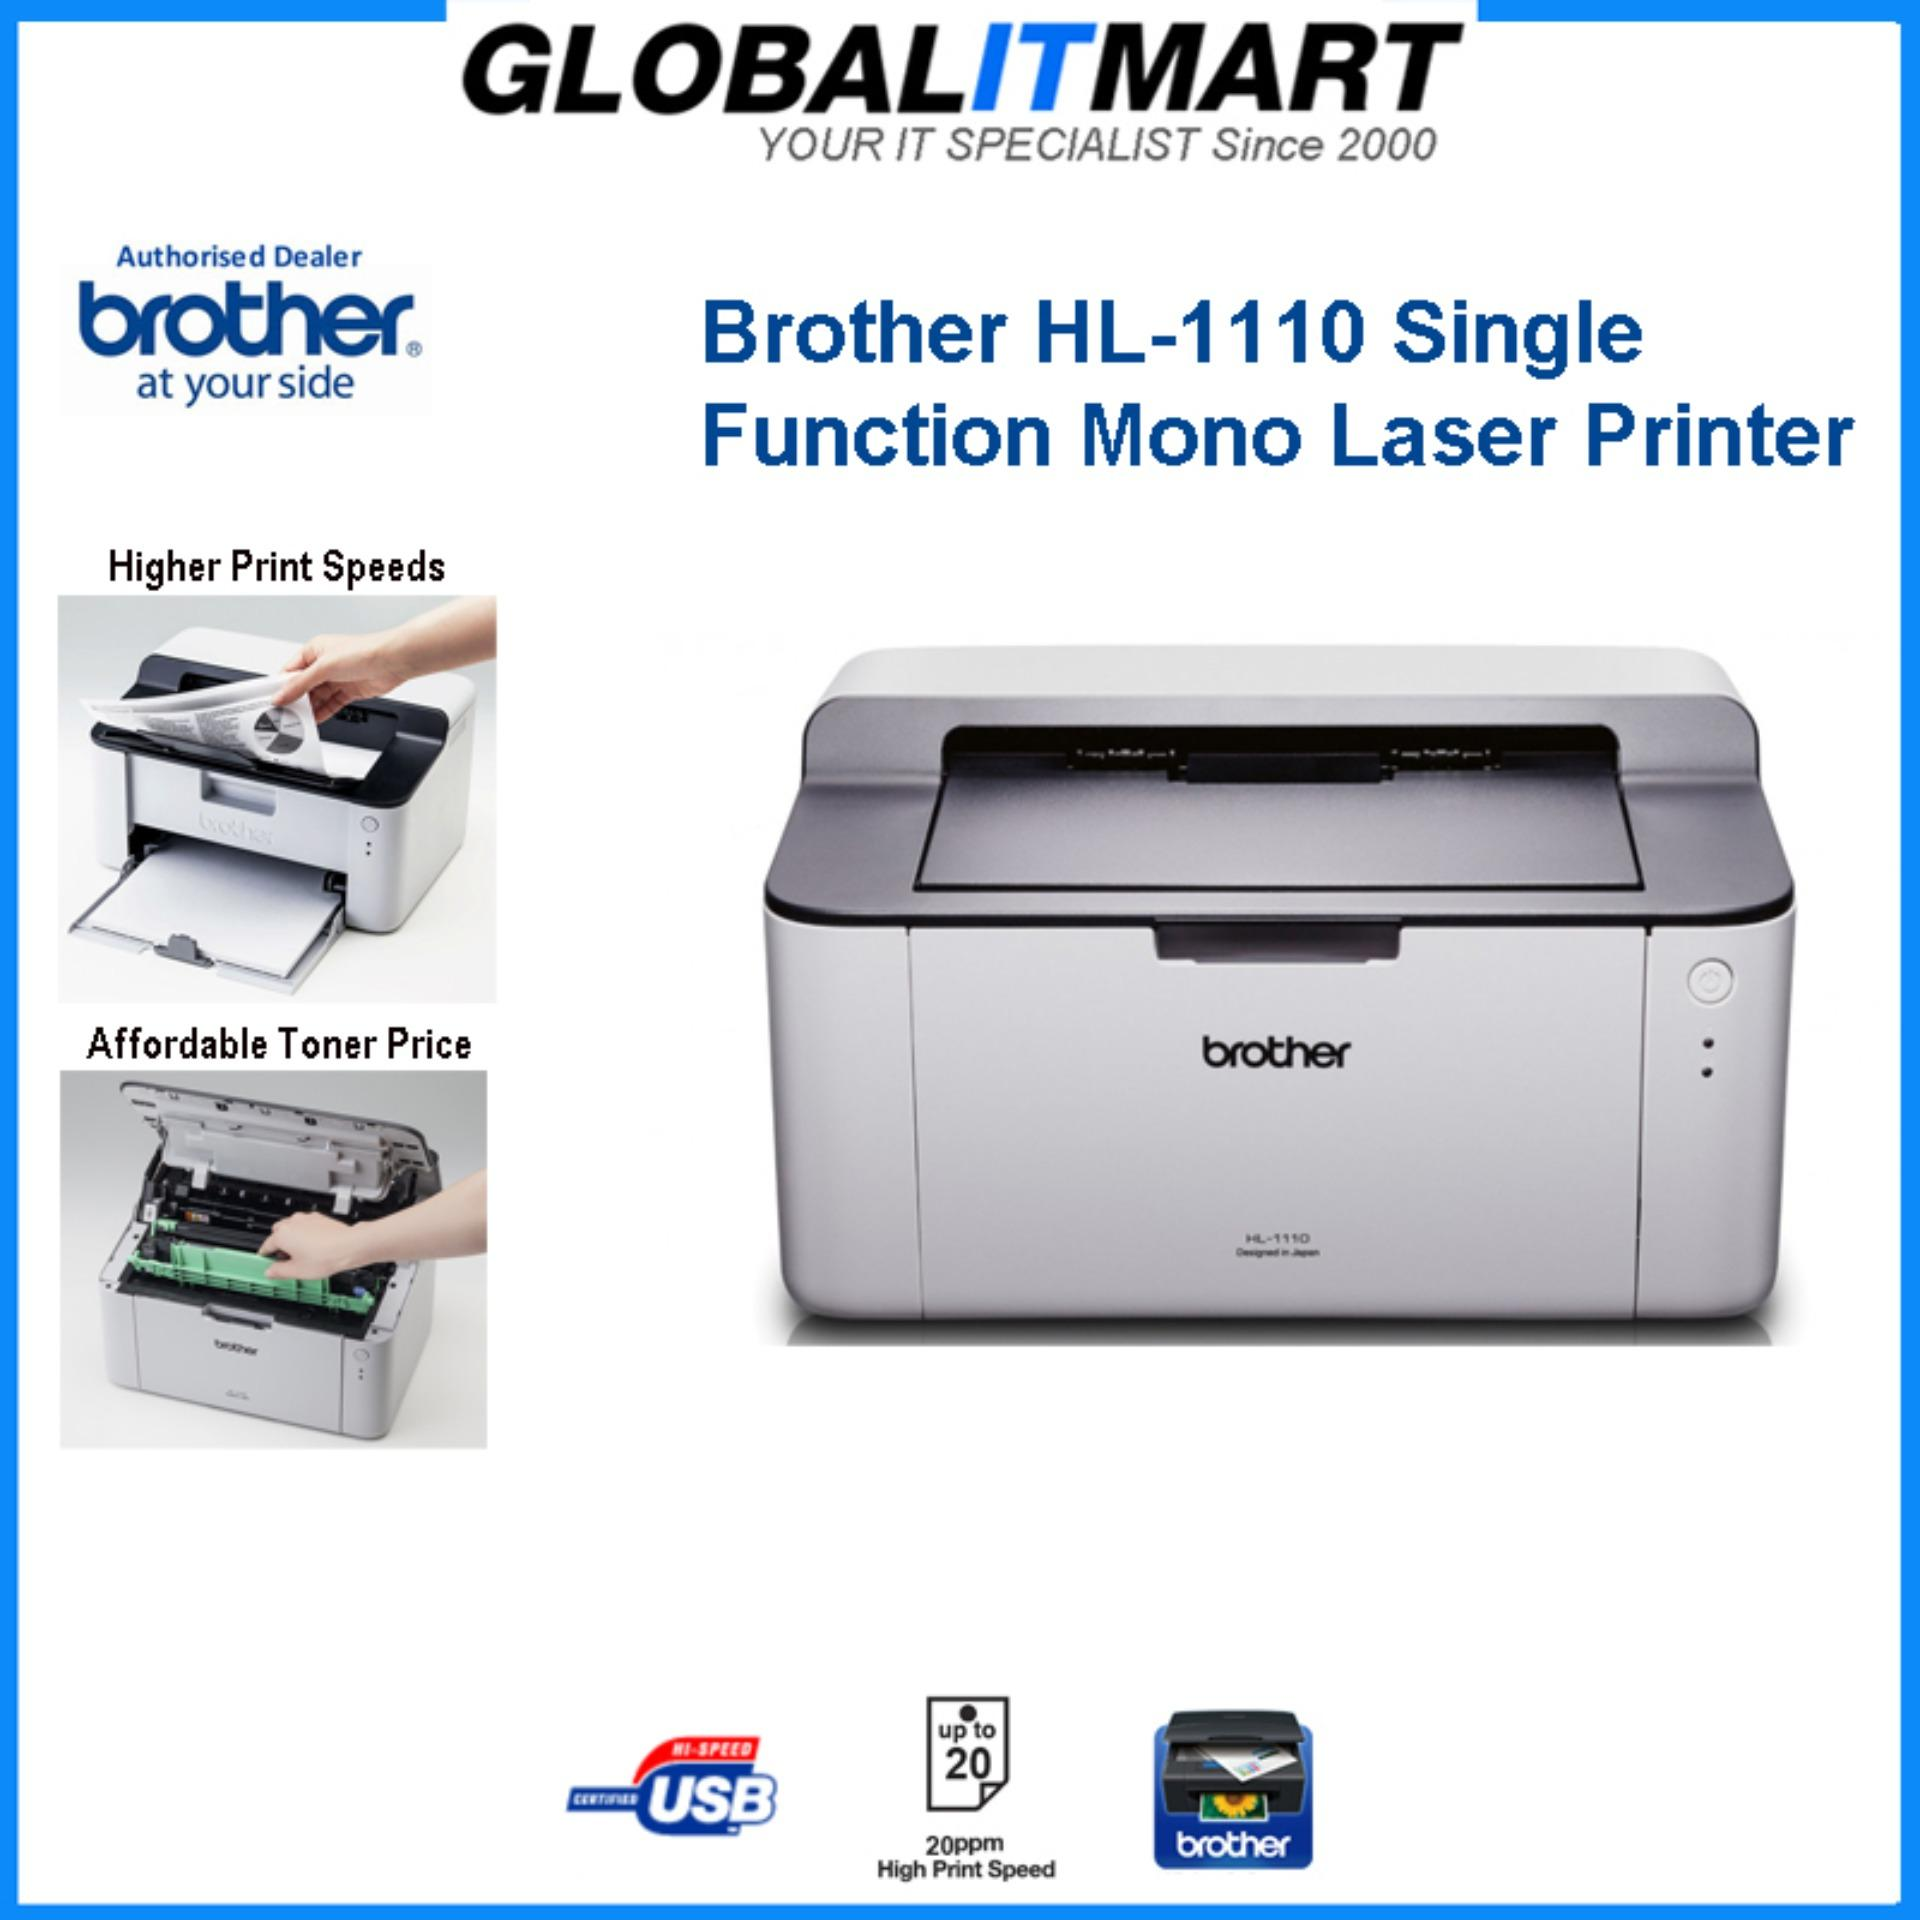 Splinternye Brother HL-1110 Single Function Mono Laser Printer (Local Brother GC-58